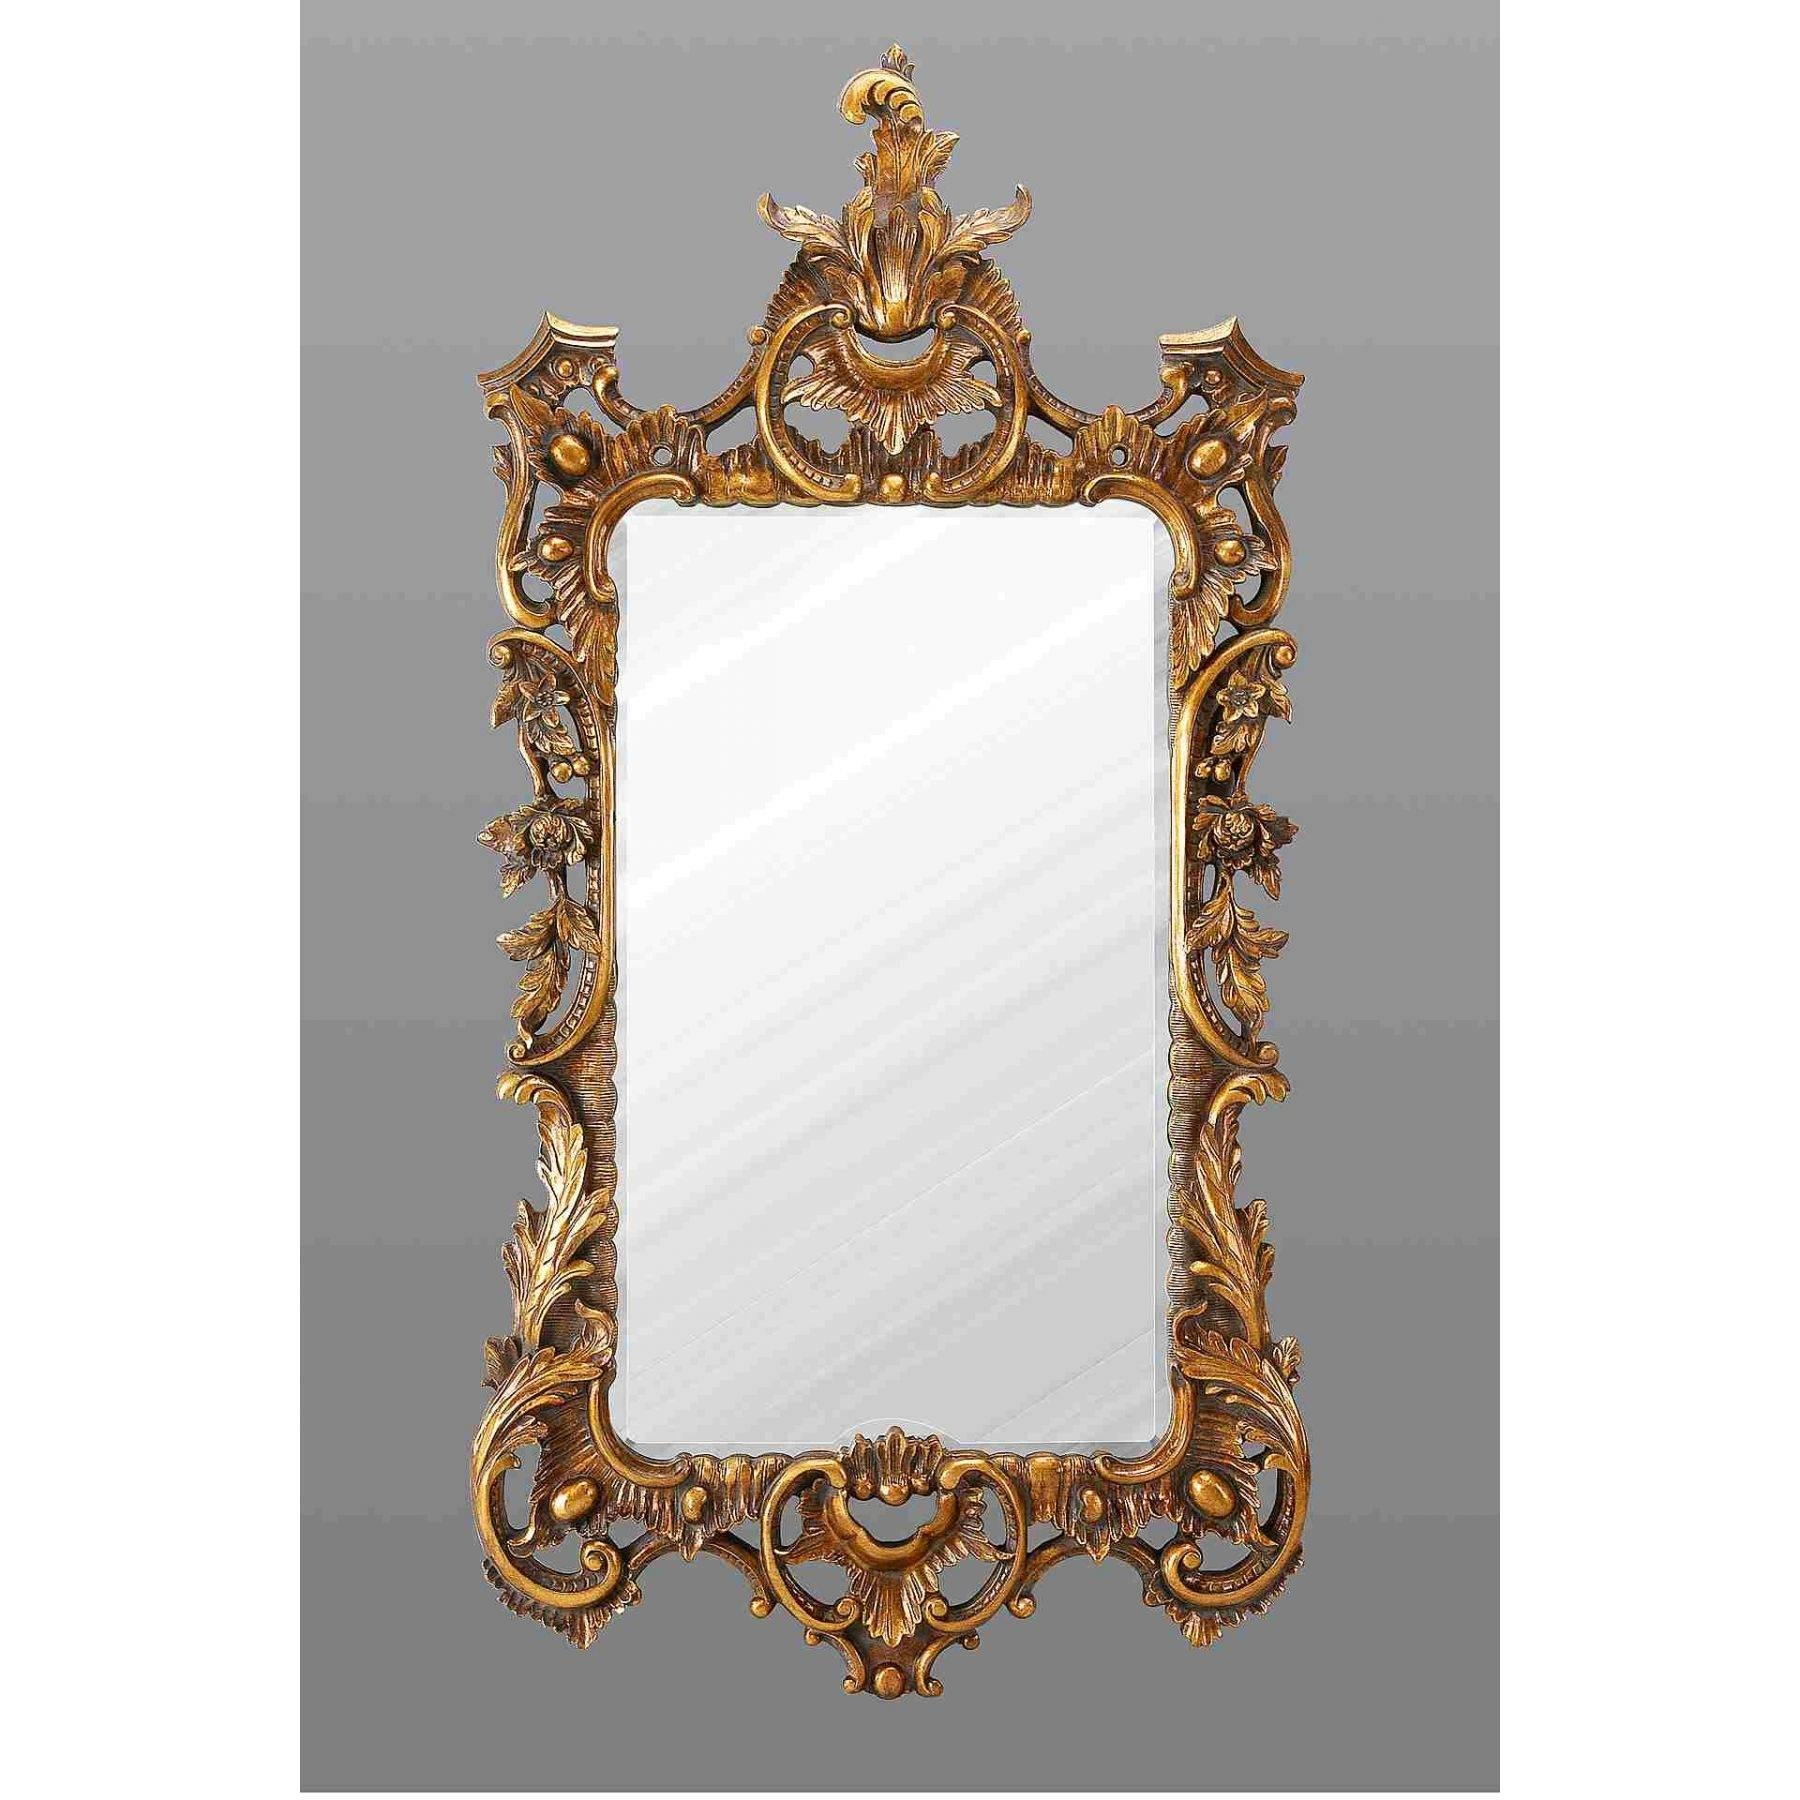 Mirror : Antique Mirrors French Clean Black Spots On Antique with regard to Black Antique Mirrors (Image 10 of 15)